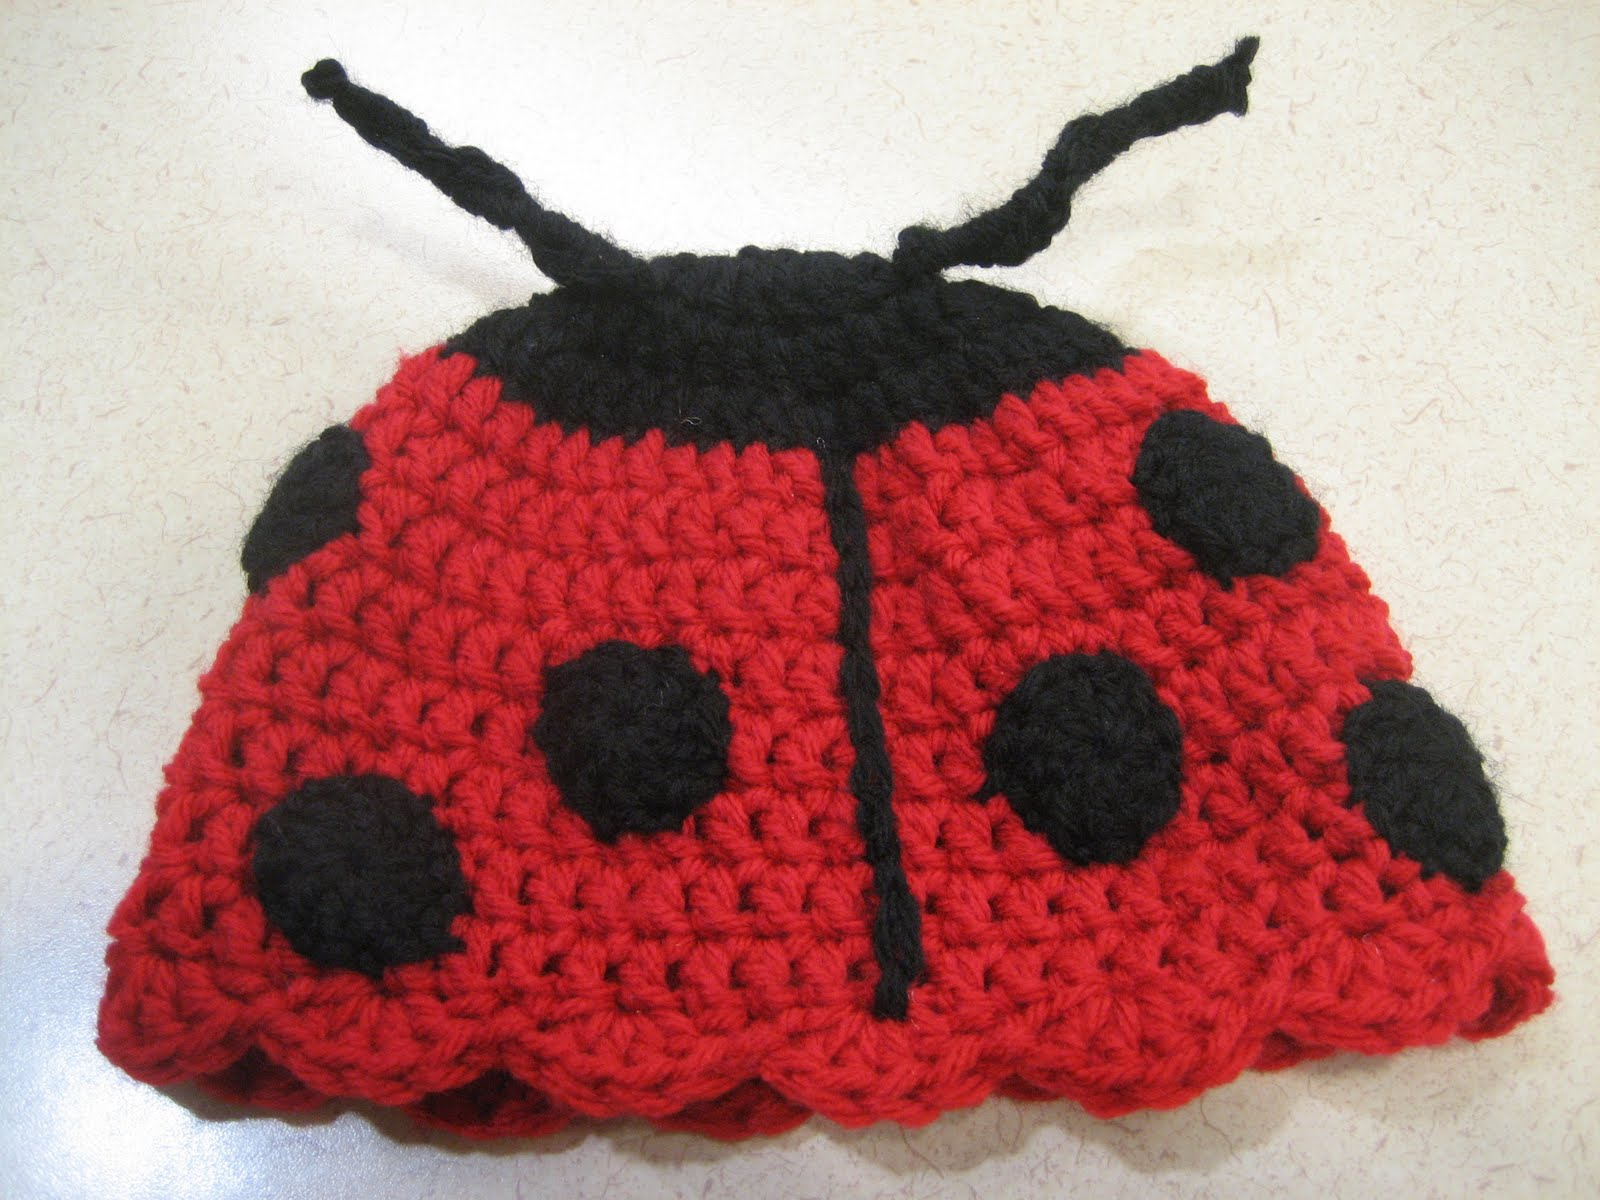 Free Crochet Ladybug Blanket Pattern : BLANKET BUG CROCHET LADY PATTERN Crochet Patterns